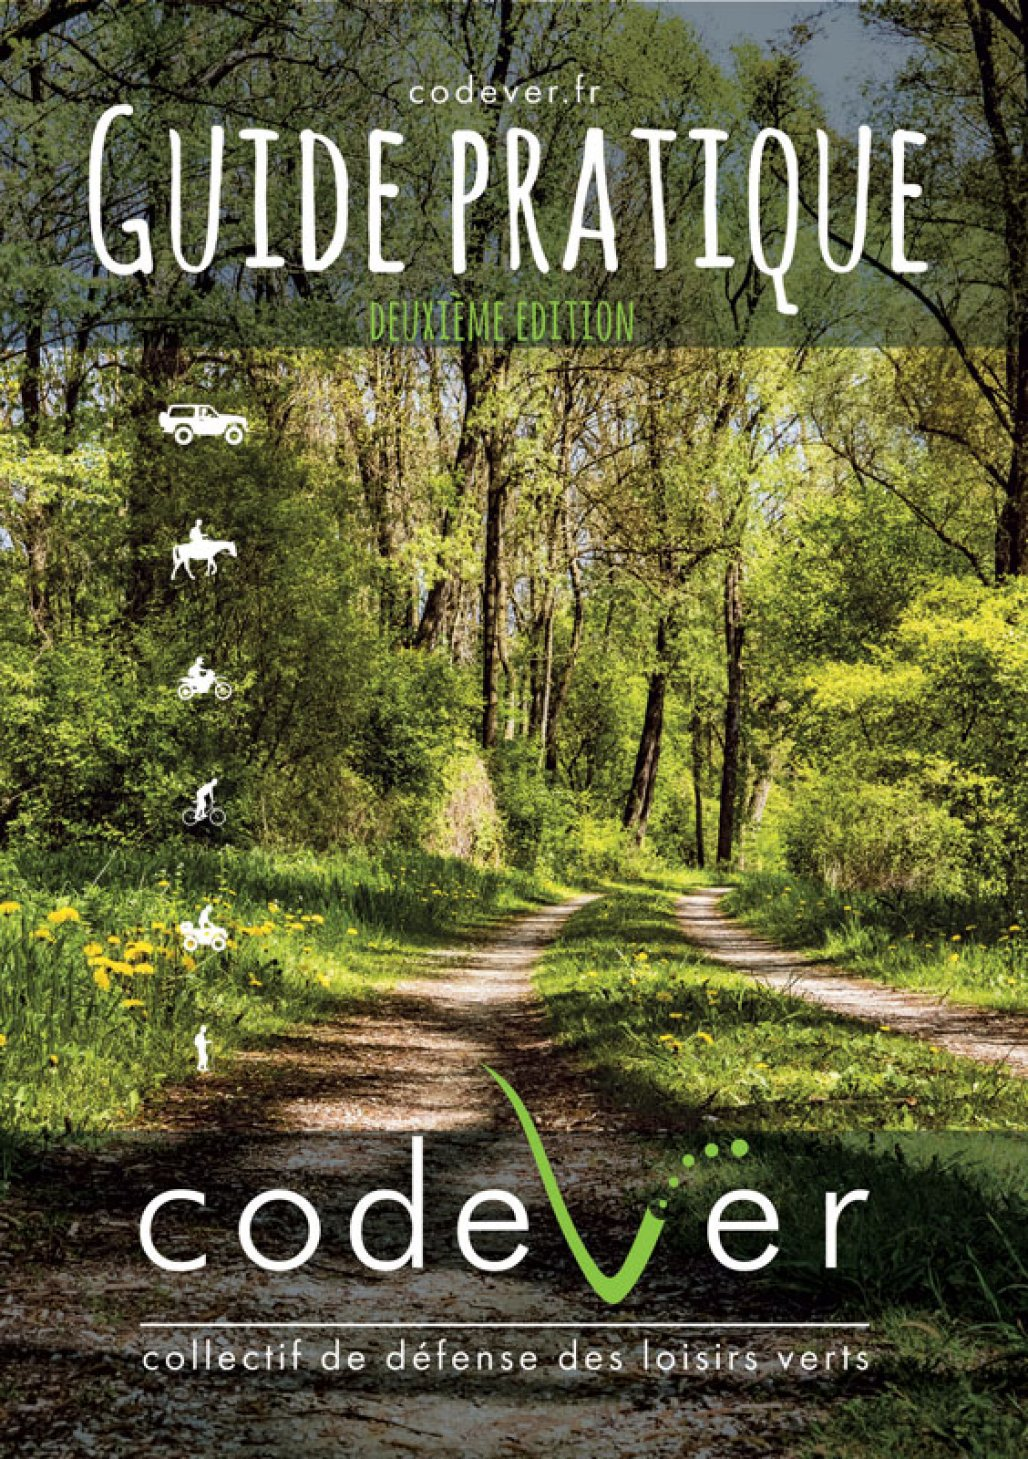 Le nouveau guide Codever arrive !